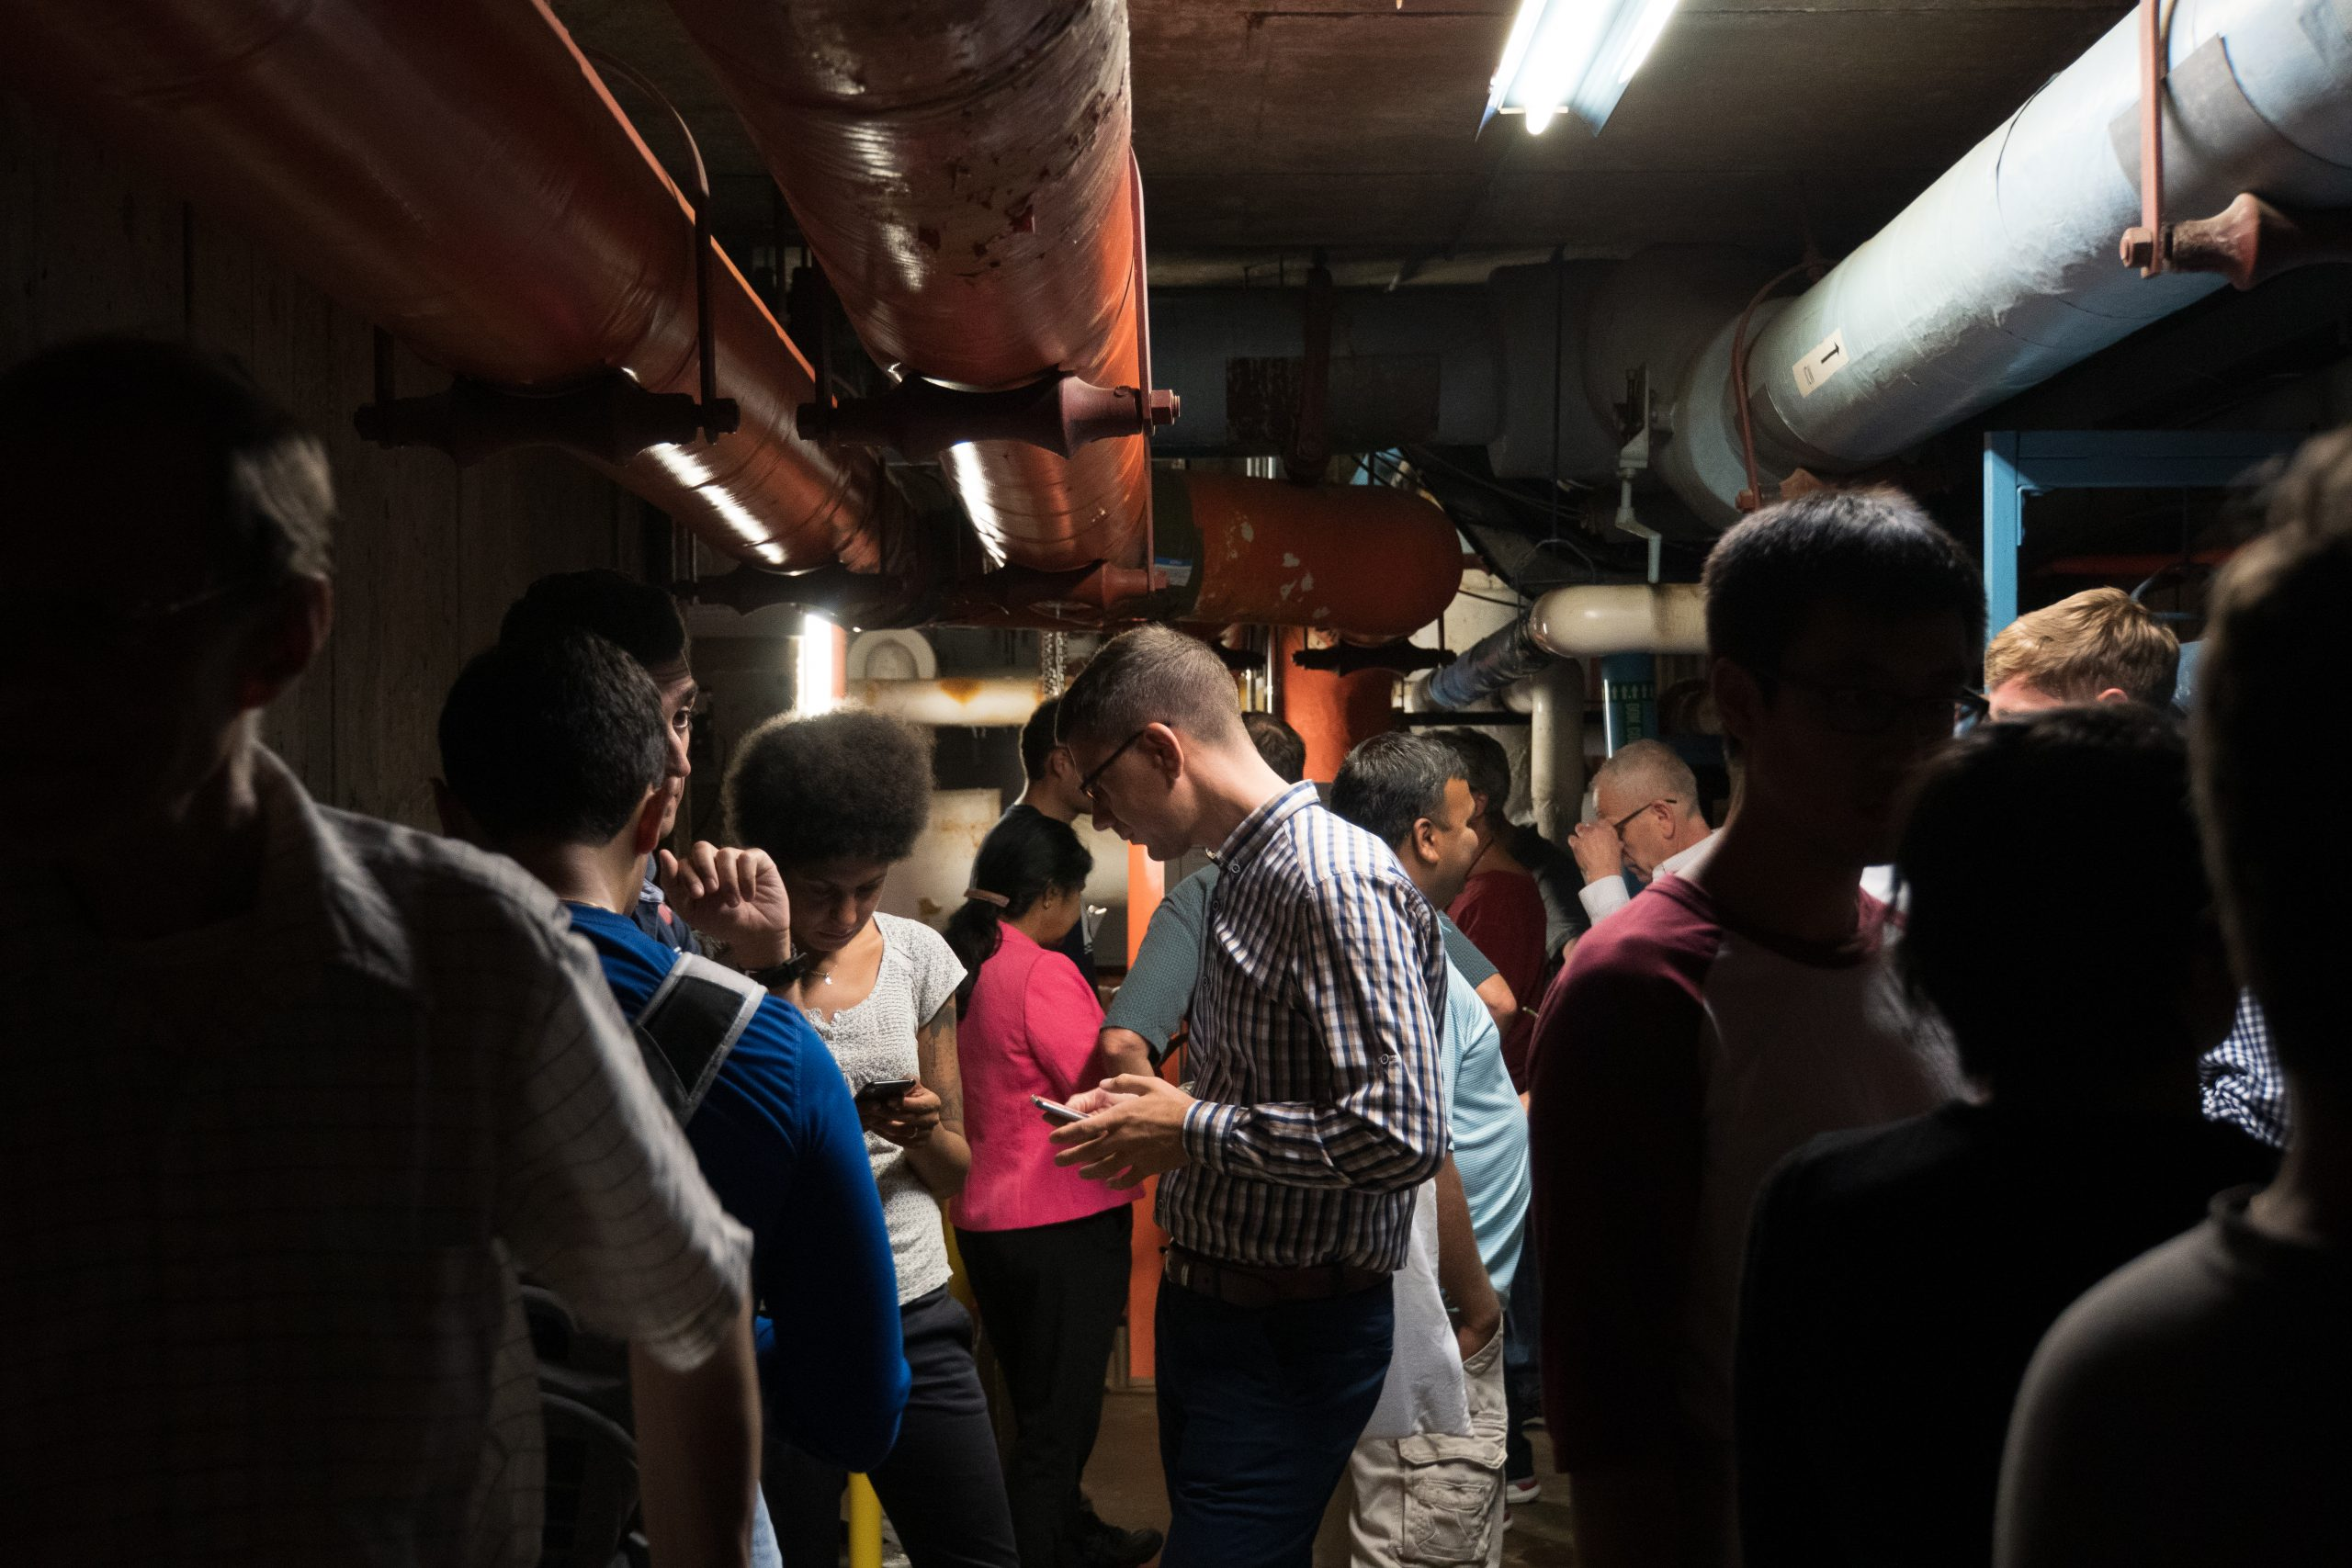 """(1/5) On Thursday, Sept. 12, Fermilab employees and users headed to an underground tunnel to take shelter from a possible tornado event. <a href=""""https://photos.app.goo.gl/NTnopMH6Aez36bdD7"""">View the Google album</a>. lab life, people Photo: Marguerite Tonjes"""